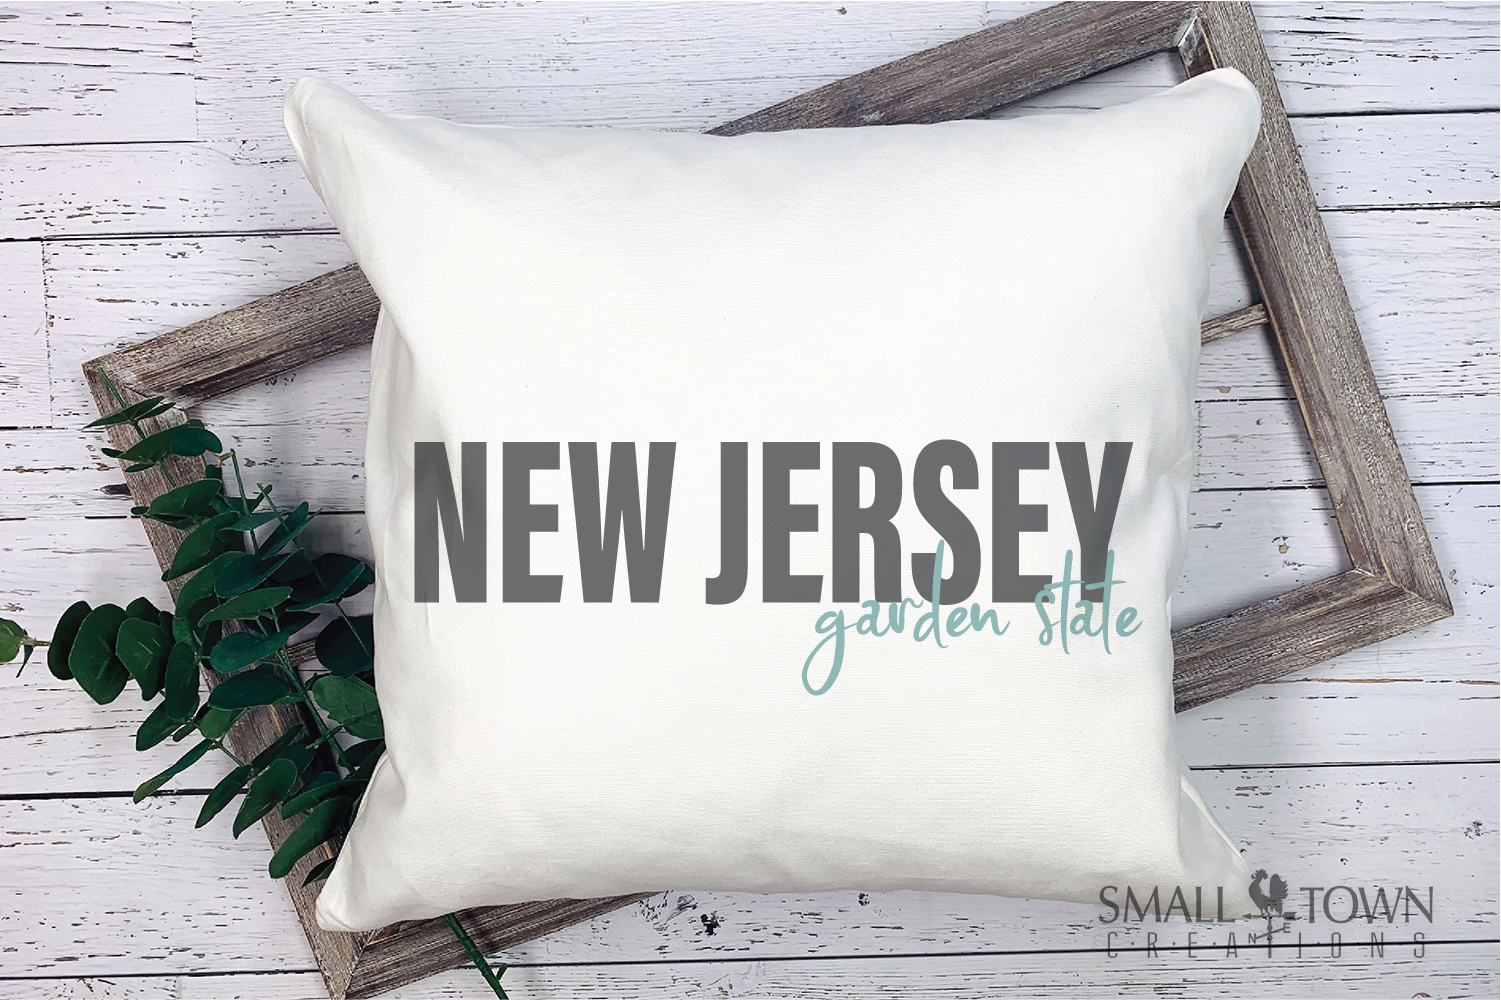 New Jersey, Garden State - slogan, PRINT, CUT & DESIGN example image 5